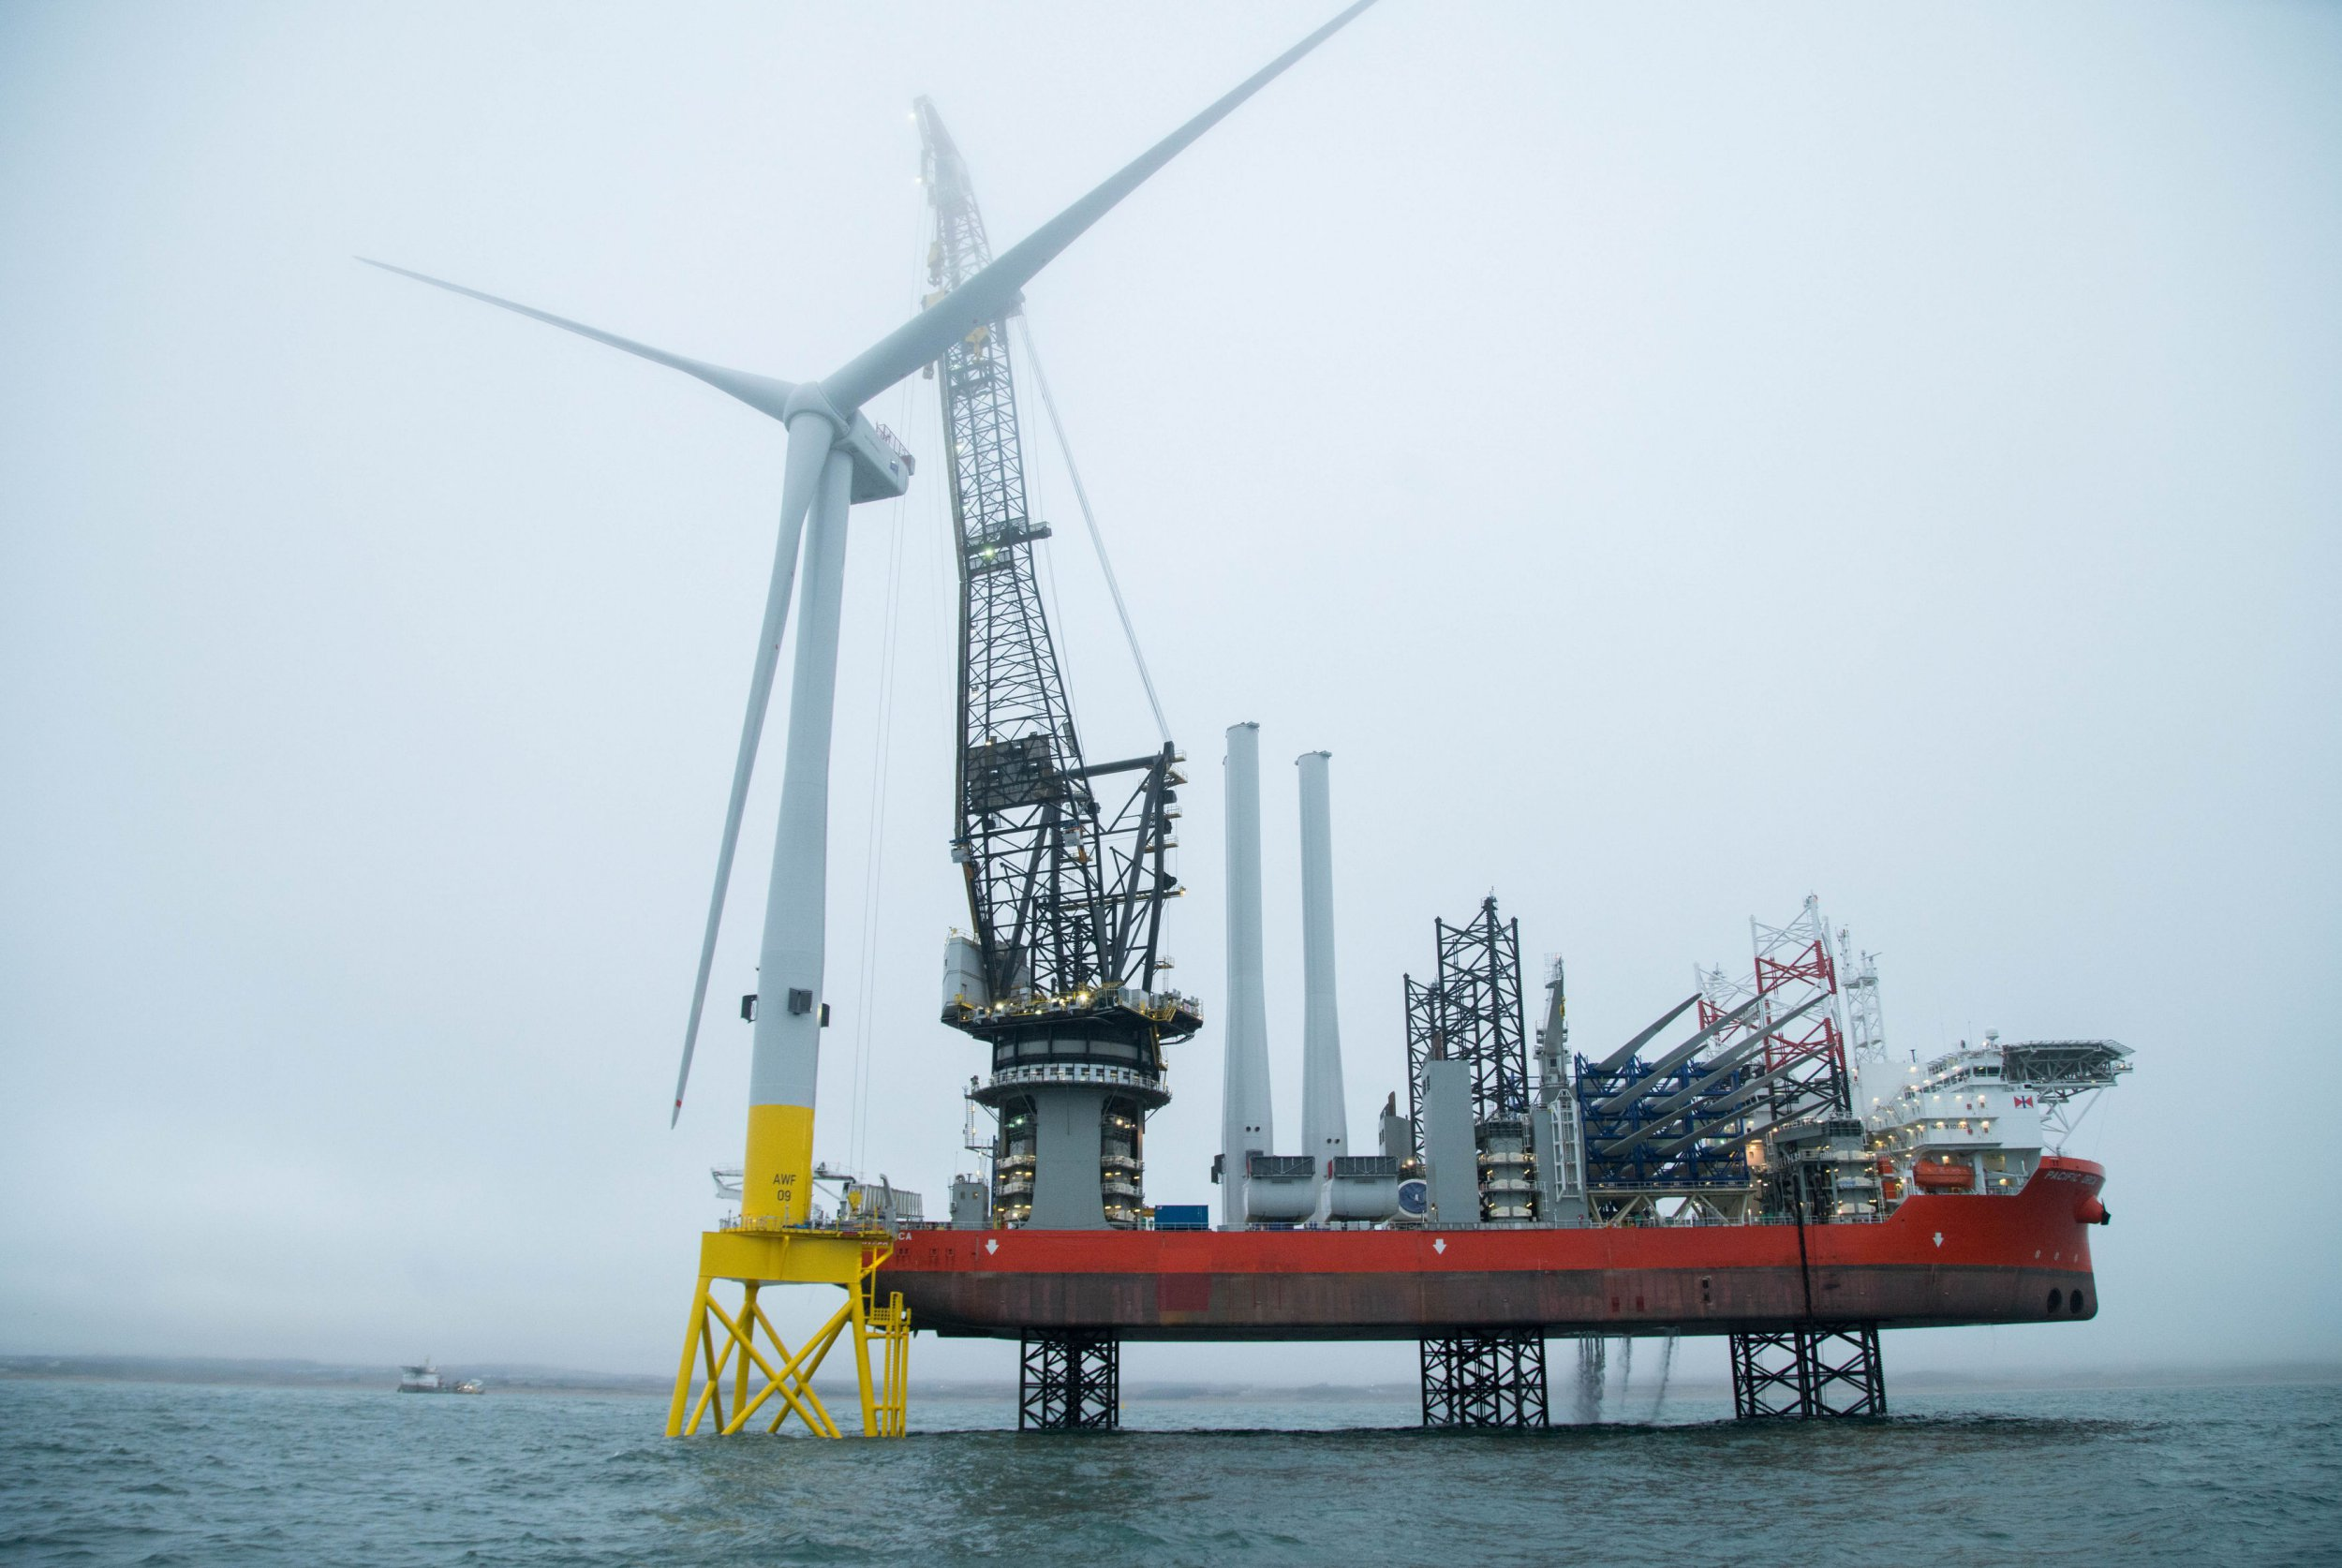 Undated handout photo issued by Vattenfall of the world's most powerful wind turbine which has been successfully installed in waters off the coast of Aberdeen. PRESS ASSOCIATION Photo. Issue date: Tuesday April 10, 2018. Vattenfall confirmed the first of 11 turbines in its European Offshore Wind Deployment Centre (EOWDC) had been put in place. See PA story ENVIRONMENT Wind. Photo credit should read: Vattenfall/PA Wire NOTE TO EDITORS: This handout photo may only be used in for editorial reporting purposes for the contemporaneous illustration of events, things or the people in the image or facts mentioned in the caption. Reuse of the picture may require further permission from the copyright holder.